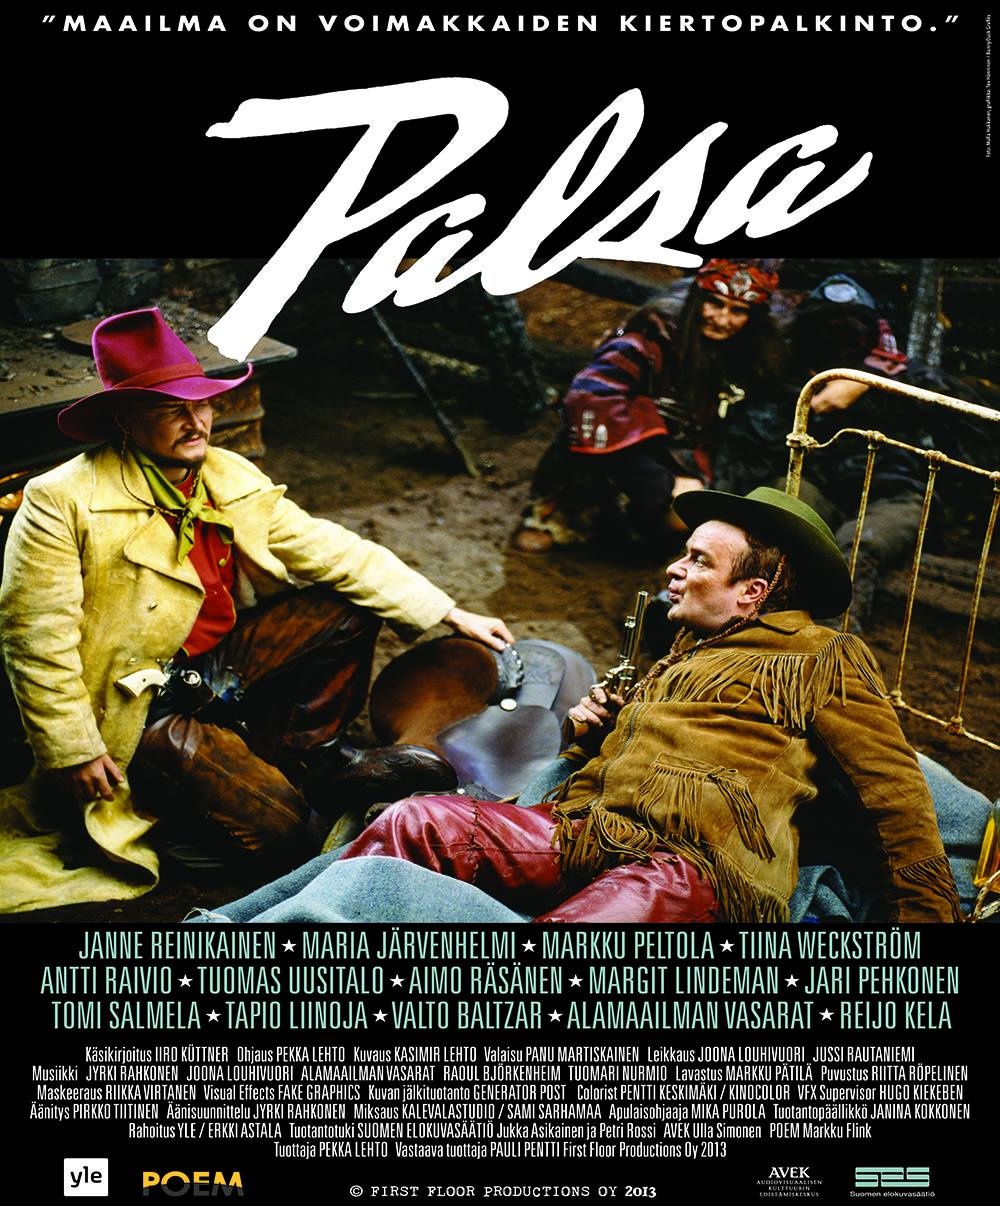 Palsa – The Surrealist Dir. Pekka Lehto Co-Edited with Joona Louhivuori First Floor Productions / 2014